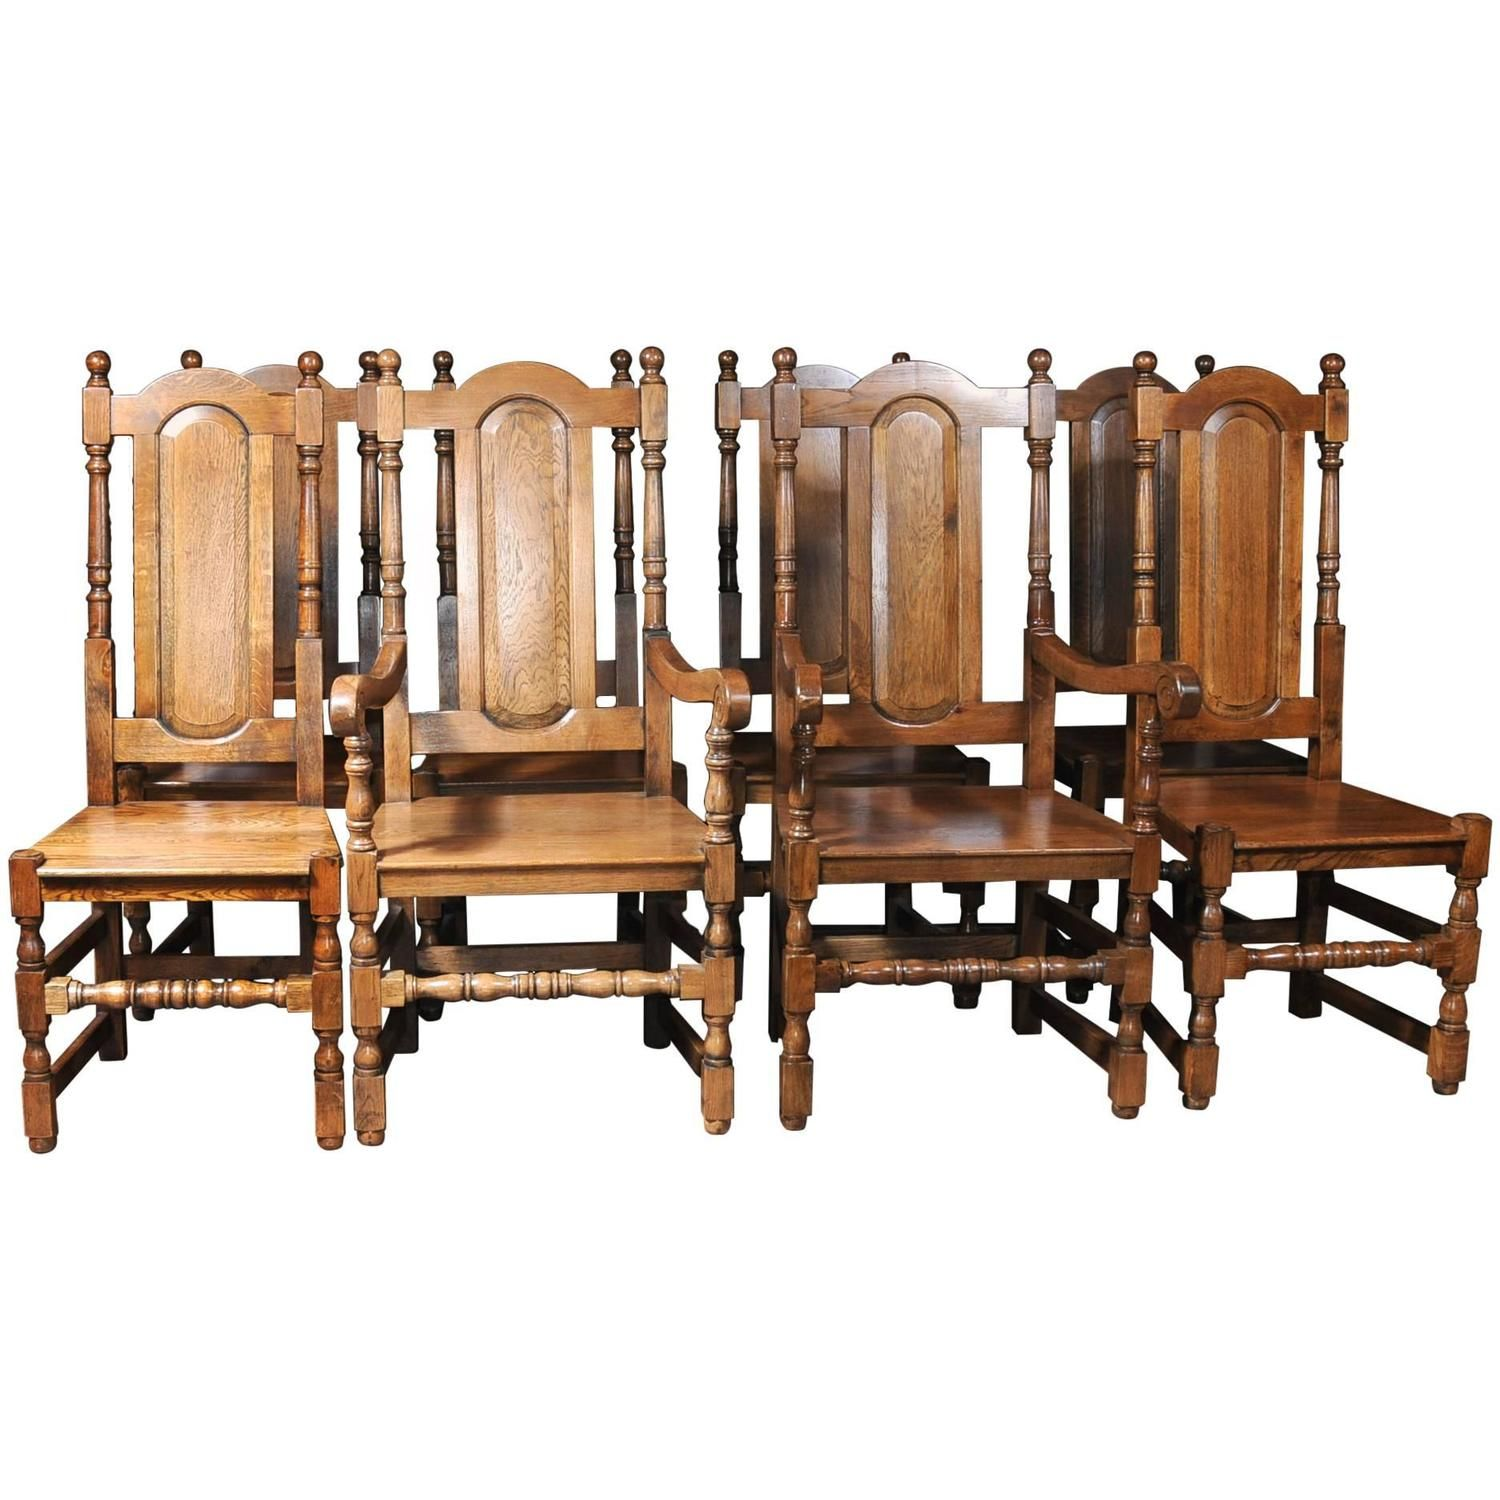 Oak dining room chairs - Set Of Eight English Elizabethan Style Tudor Oak Dining Chairs